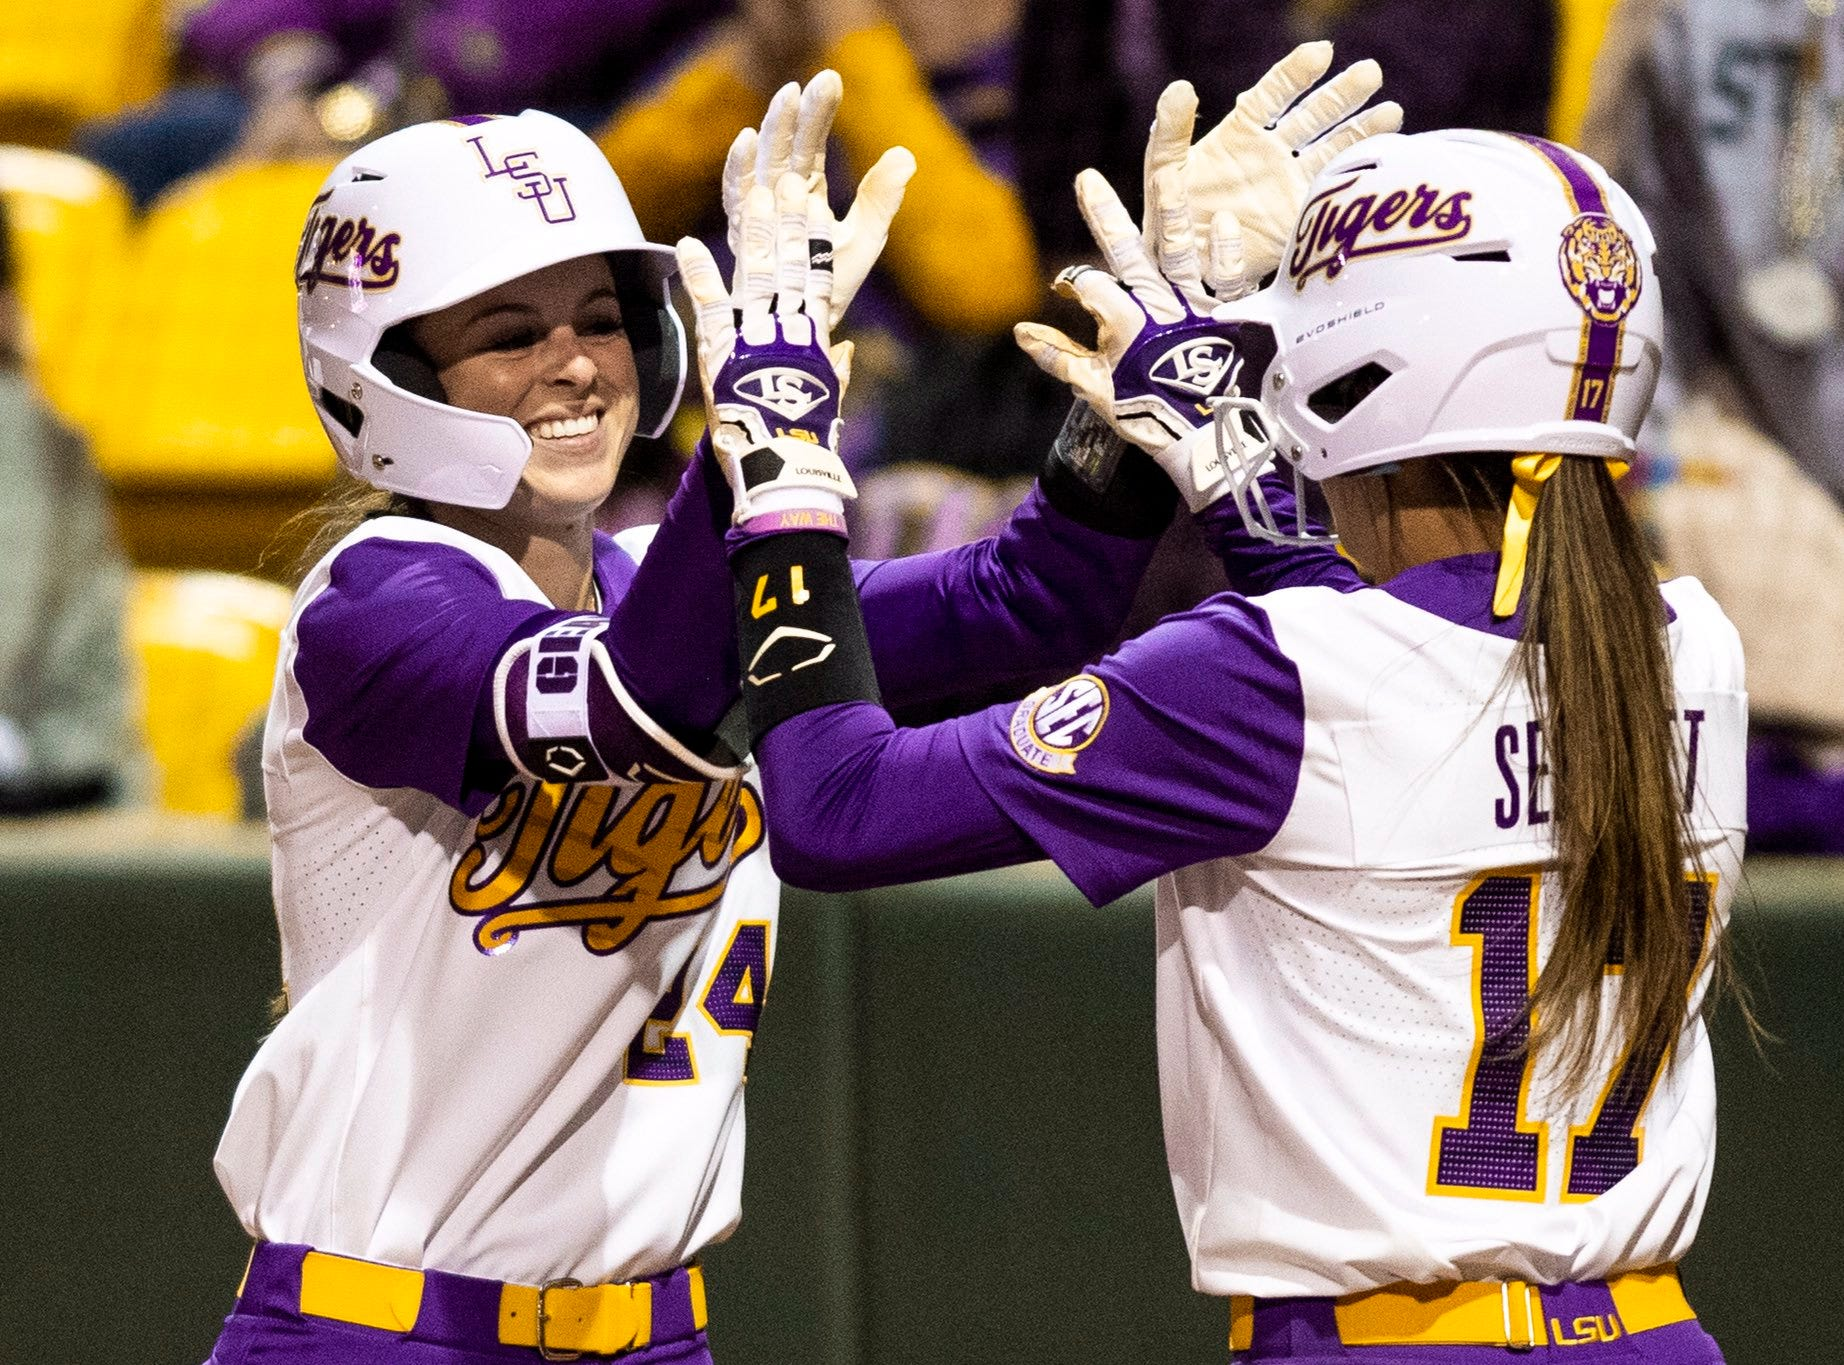 See the LSU softball catch that made ESPN SportsCenter's Top 10